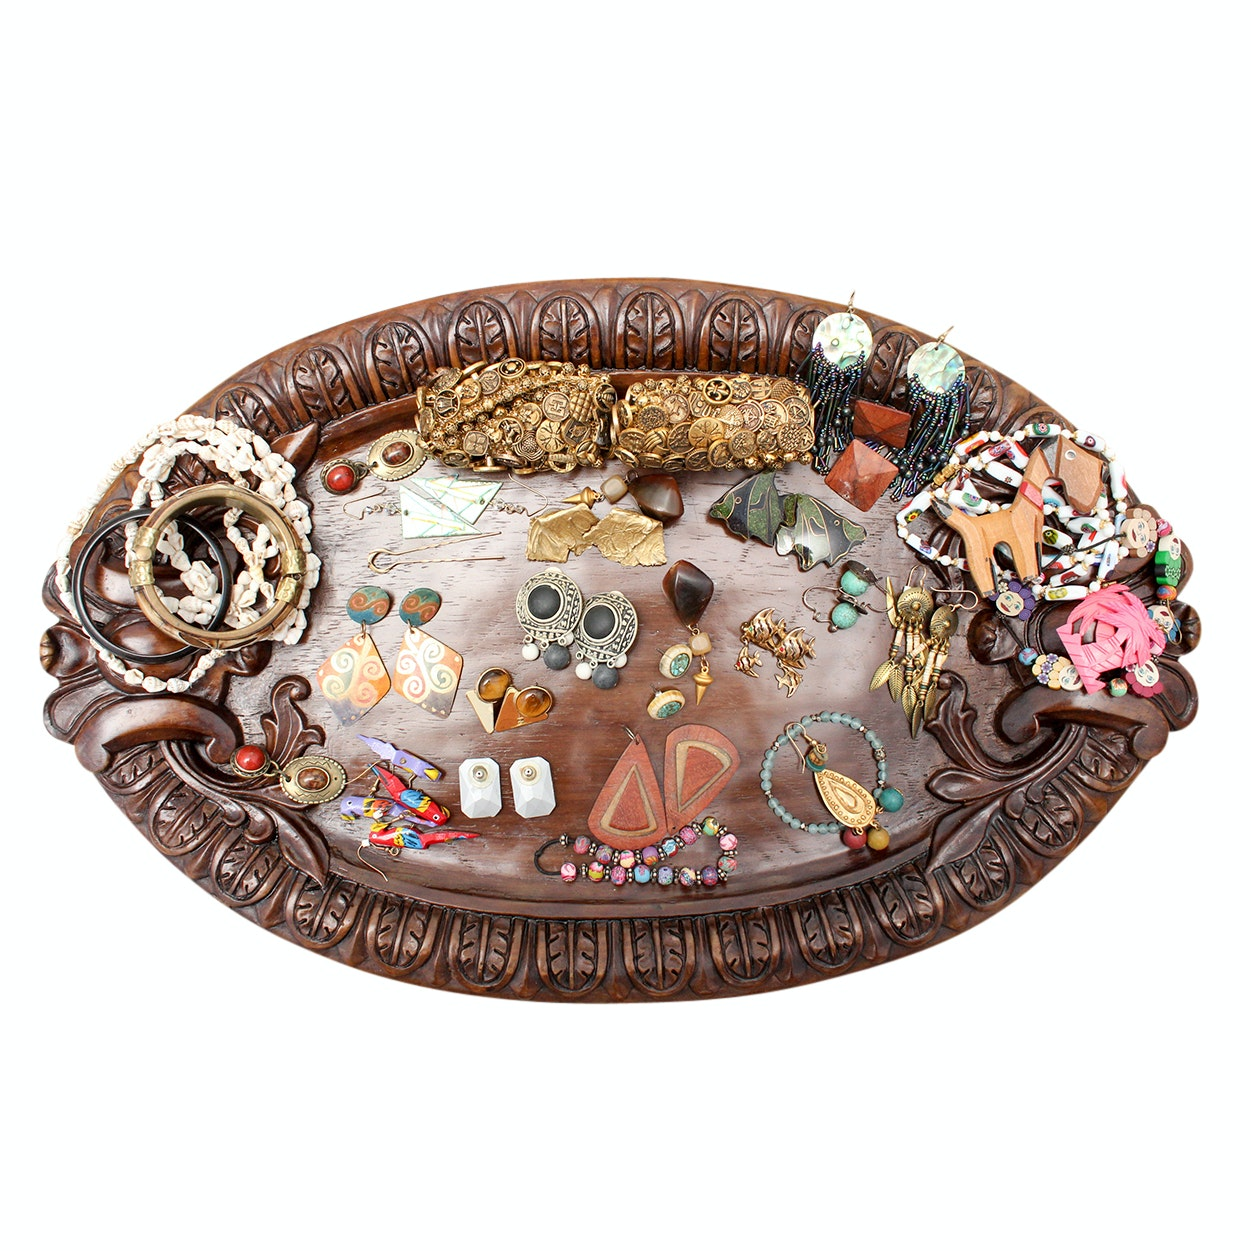 Vintage Wood and Beaded Jewelry and Carved Wood Display Tray